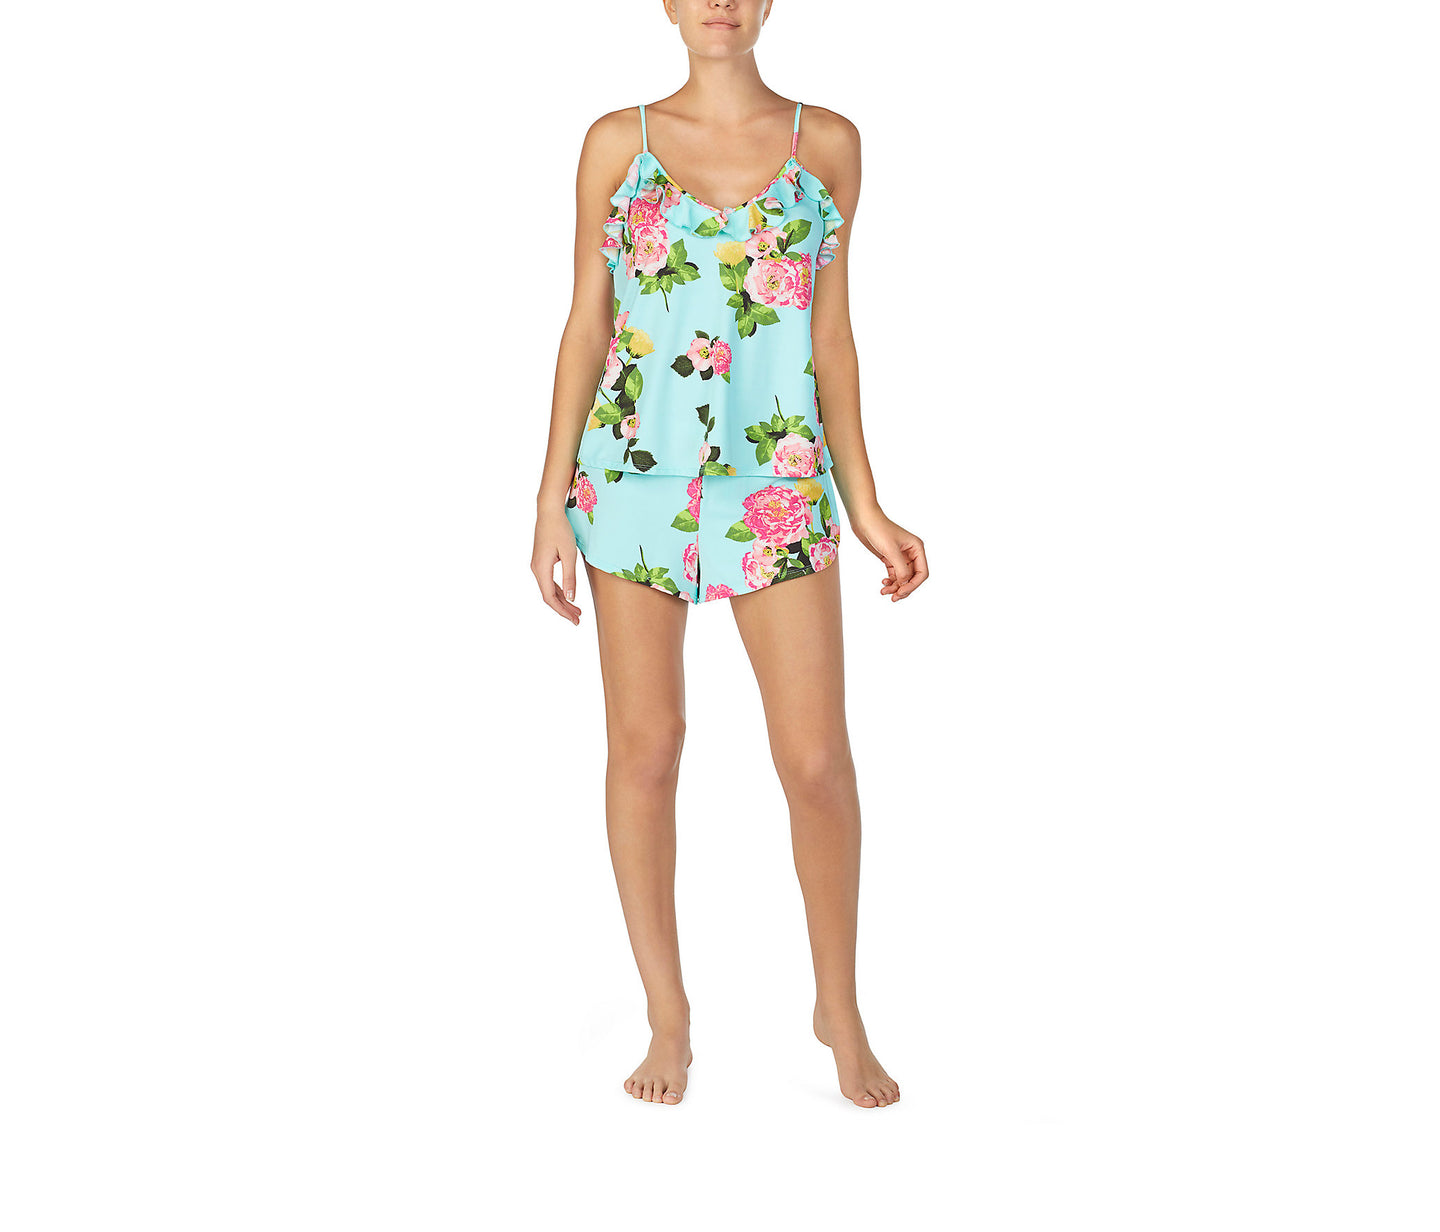 FOR THE FRILL OF IT SLINKY SHORT SET FLORAL - APPAREL - Betsey Johnson